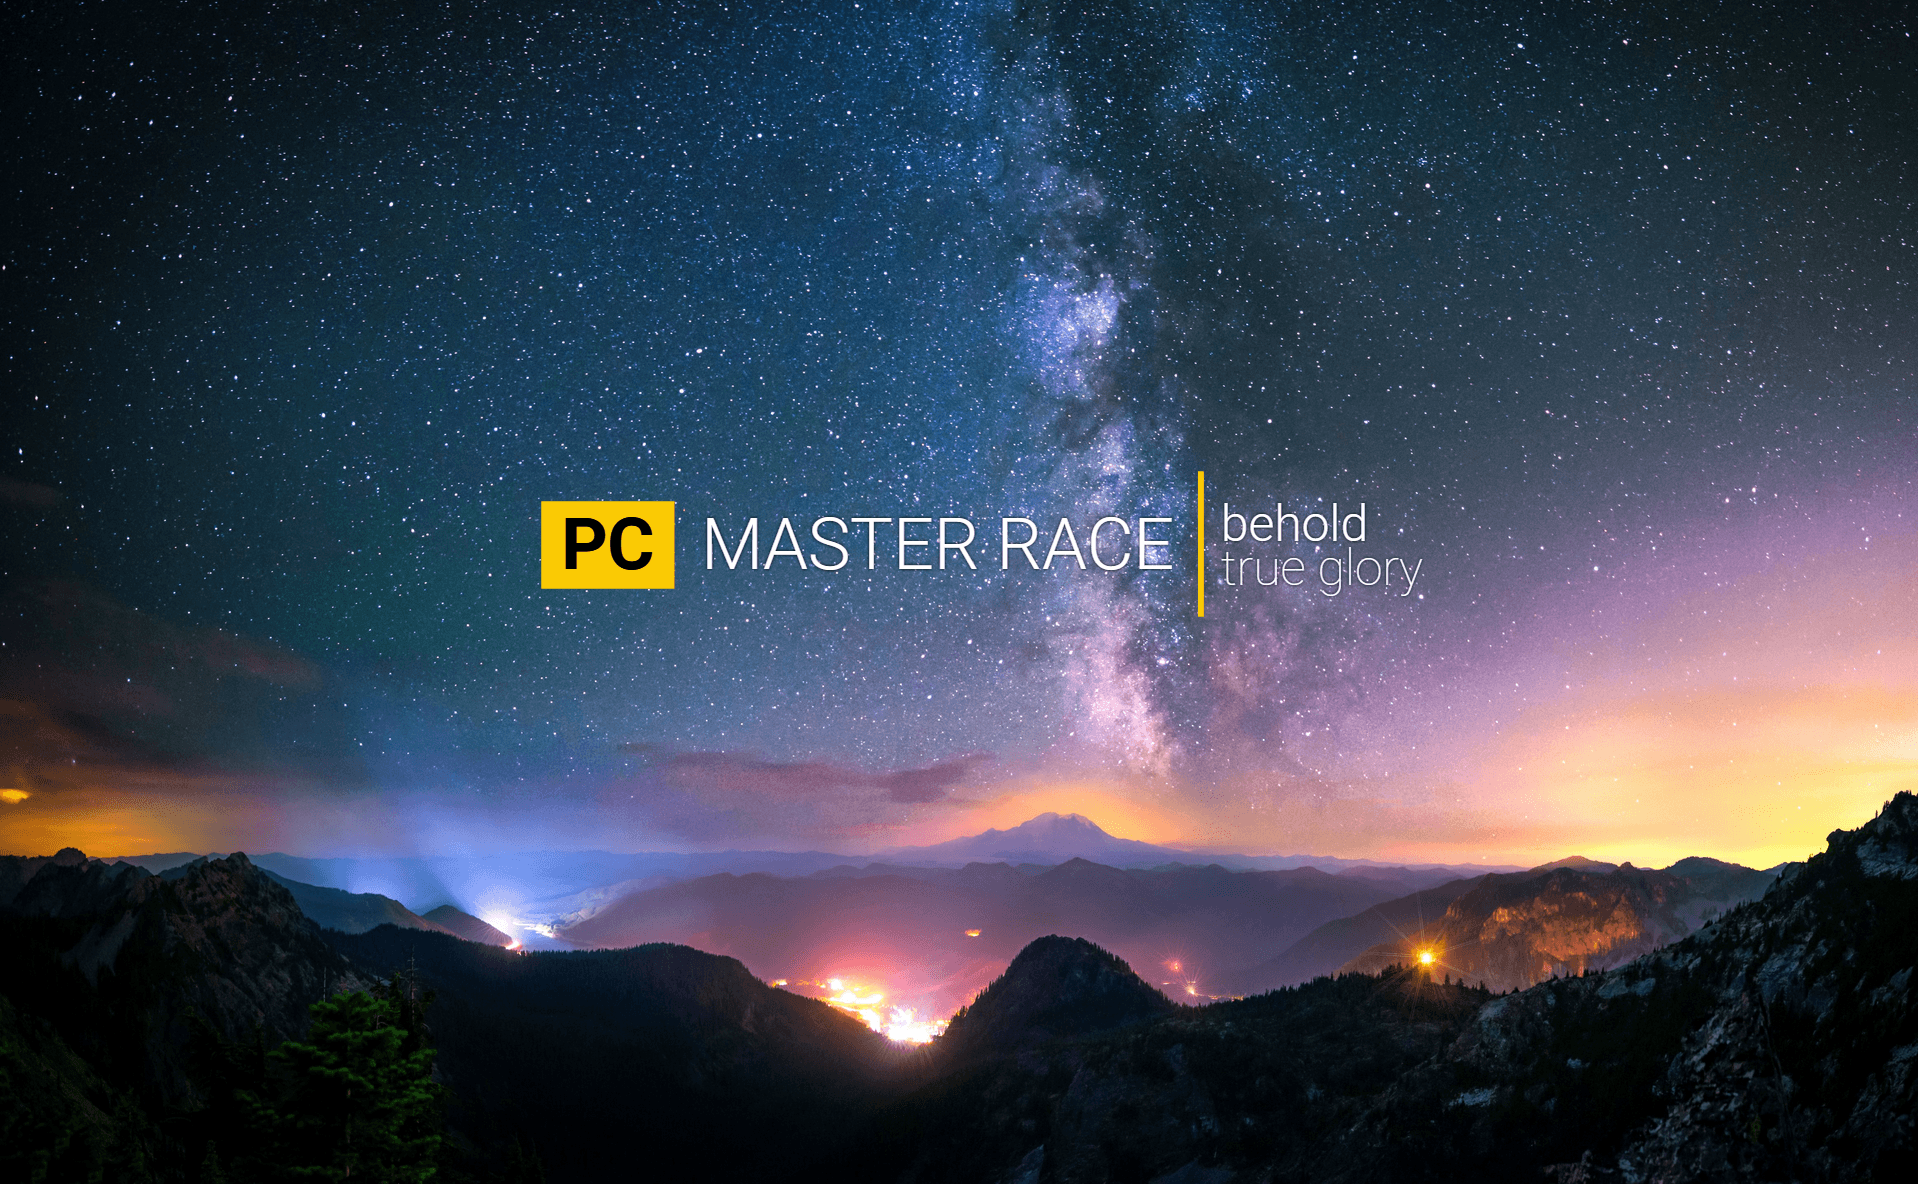 Pc Master Race Wallpapers Wallpaper Cave